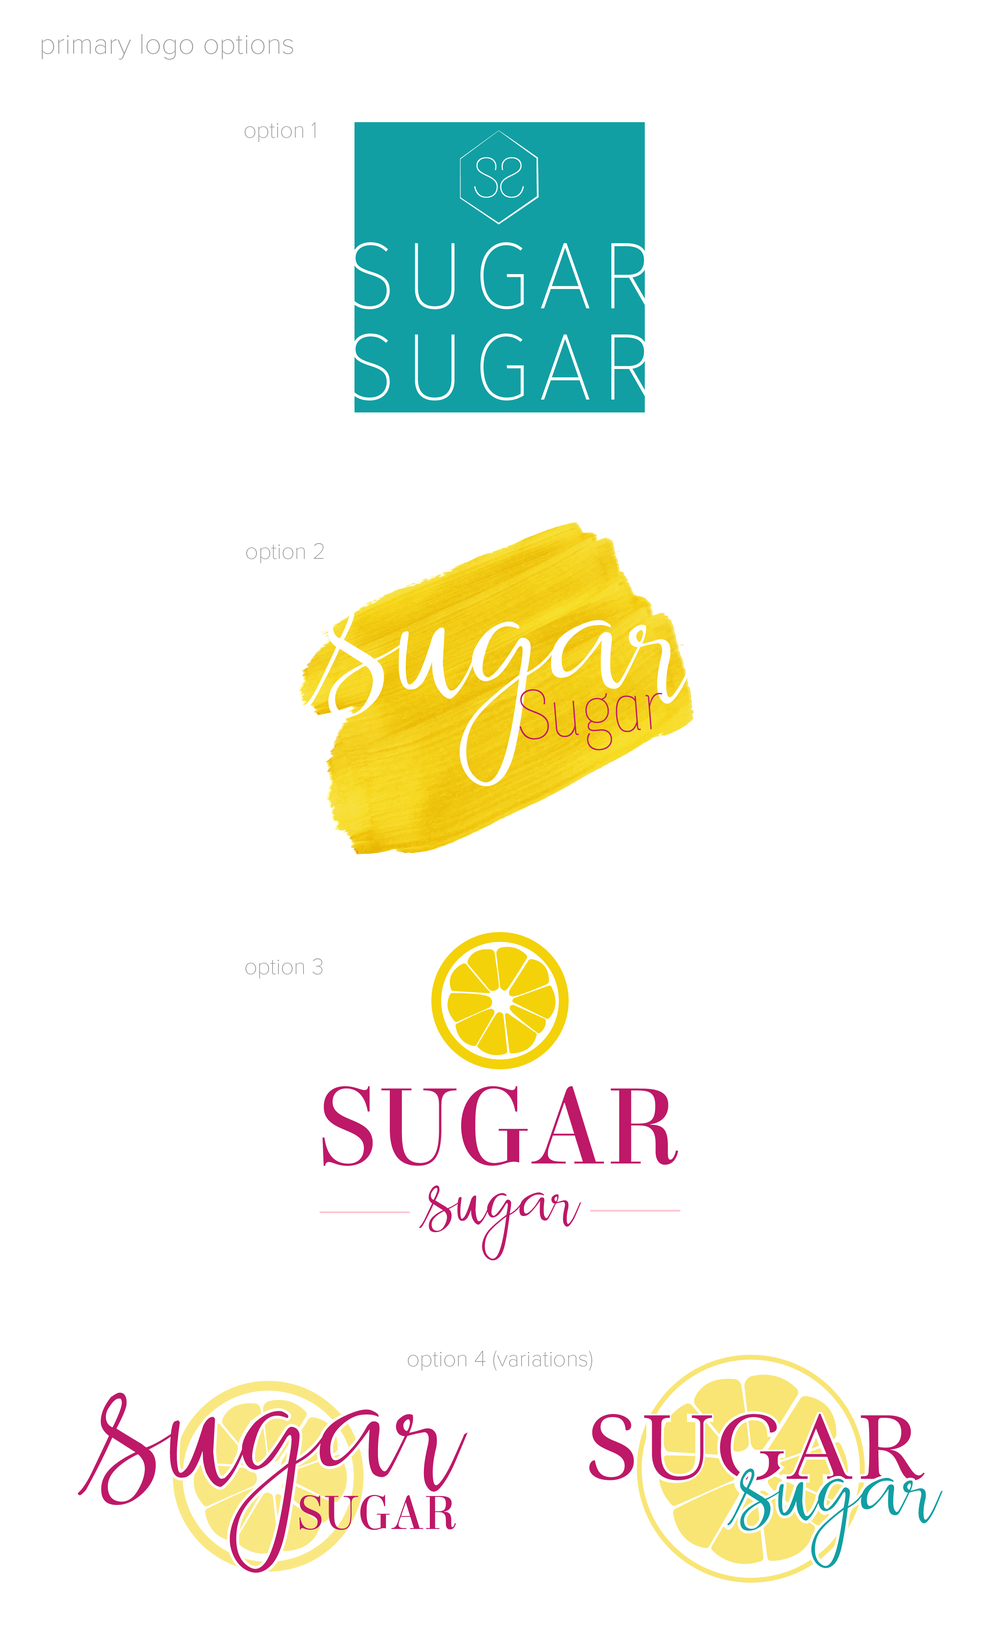 Sugar Sugar Portland Logo Concepts by Brightly & Co.